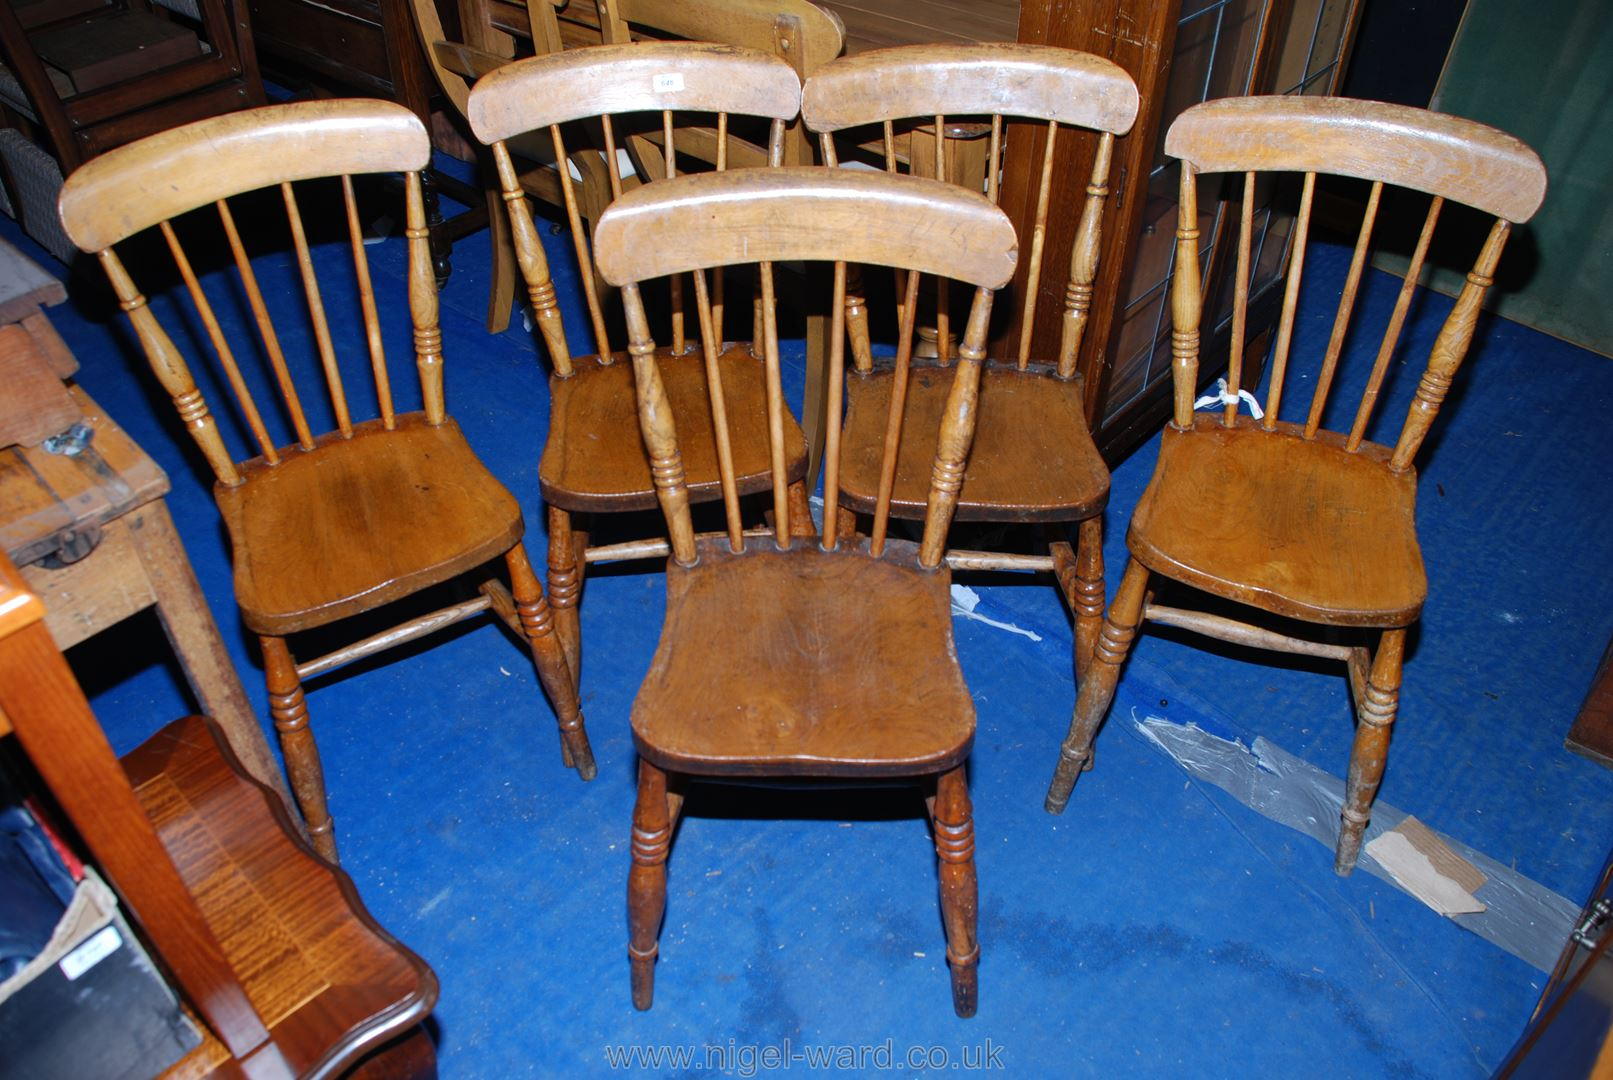 A set of five Elm seated, stick-back kitchen chairs.